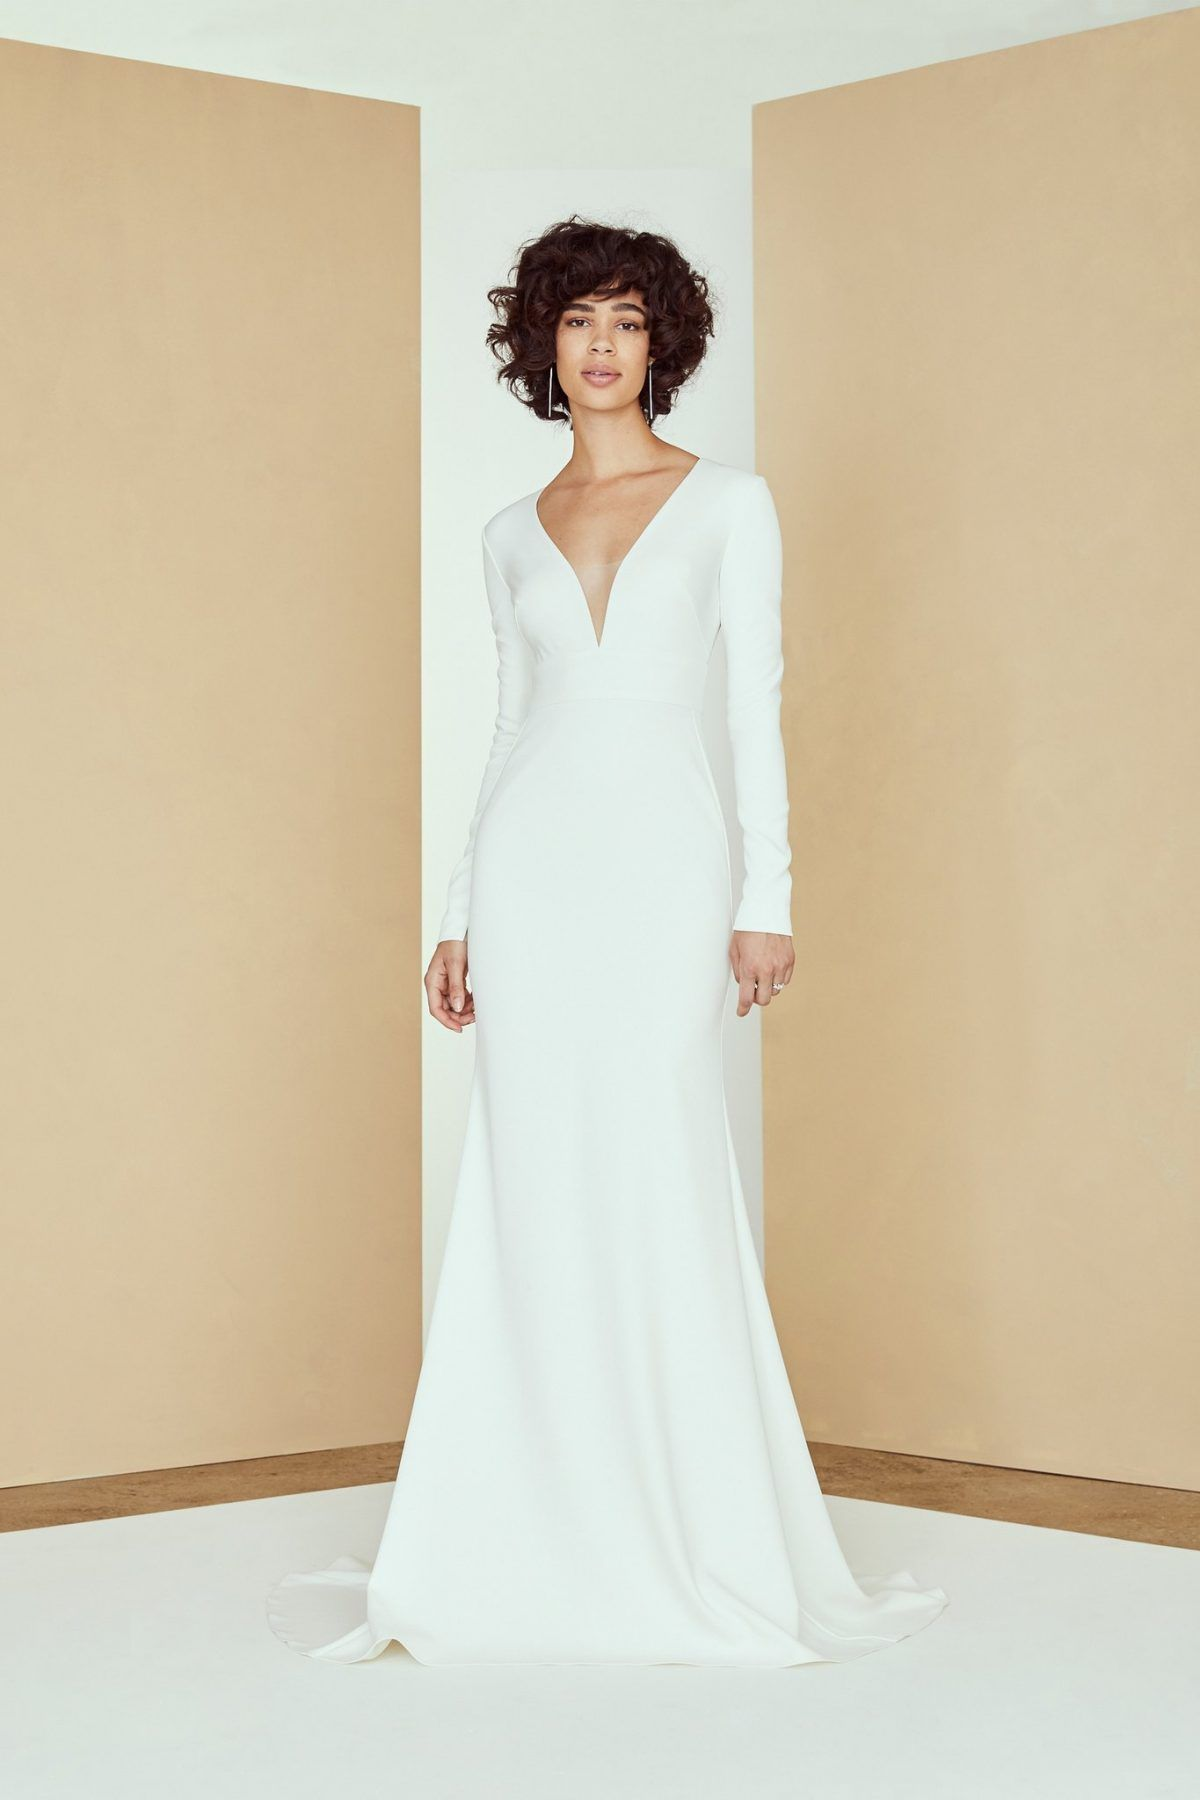 39++ V neck wedding dress with bell sleeves info